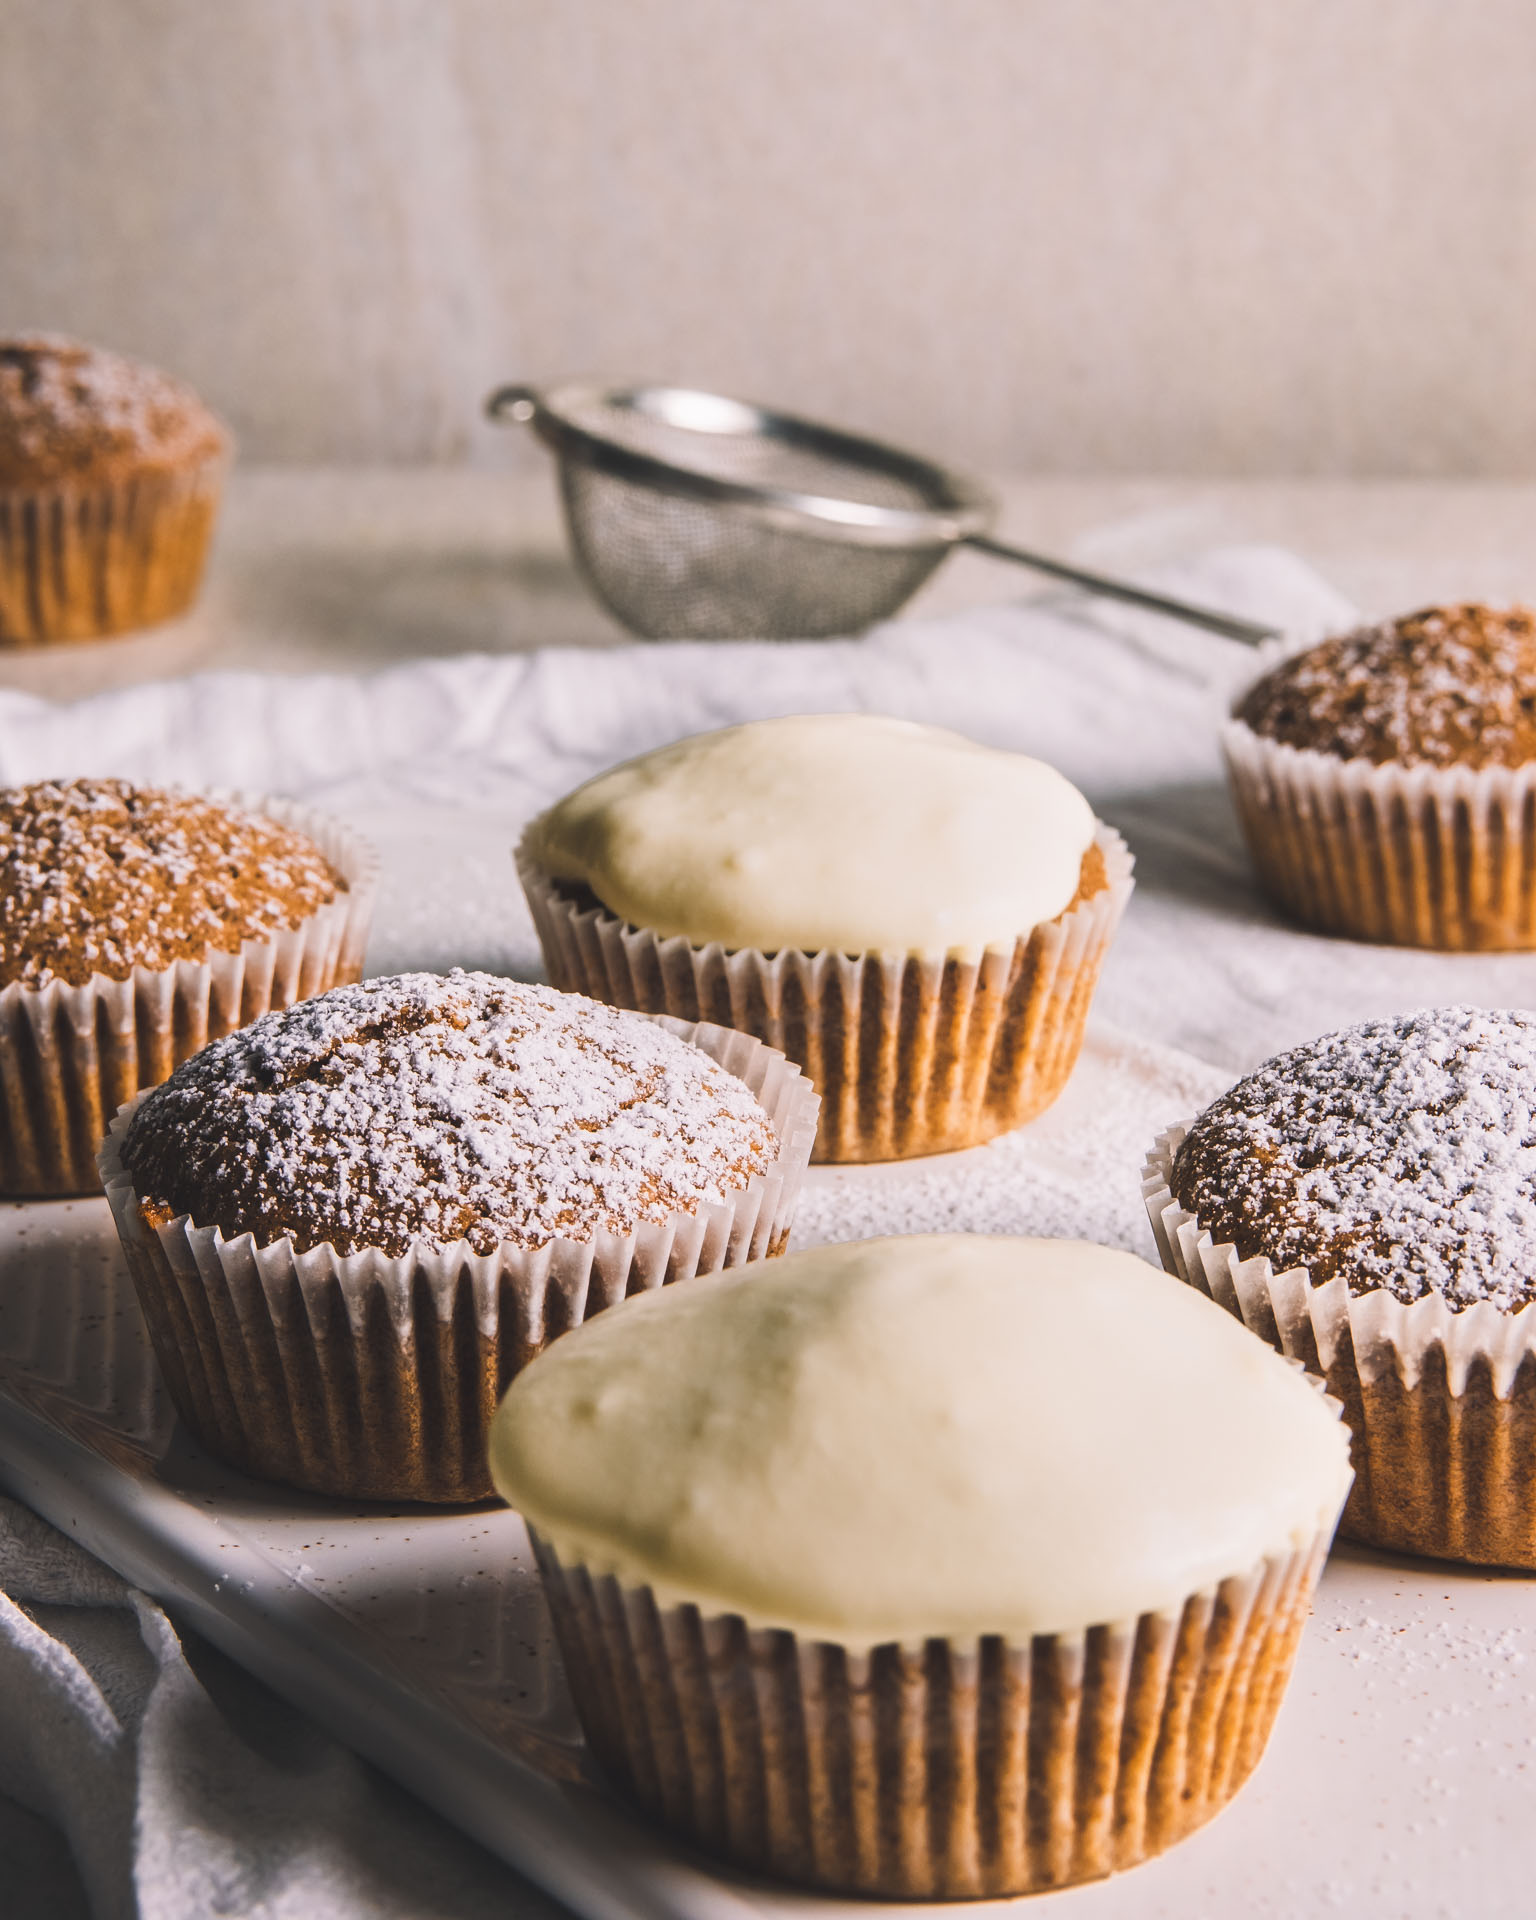 Vegan gingerbread cupcakes muffin with cream cheese frosting